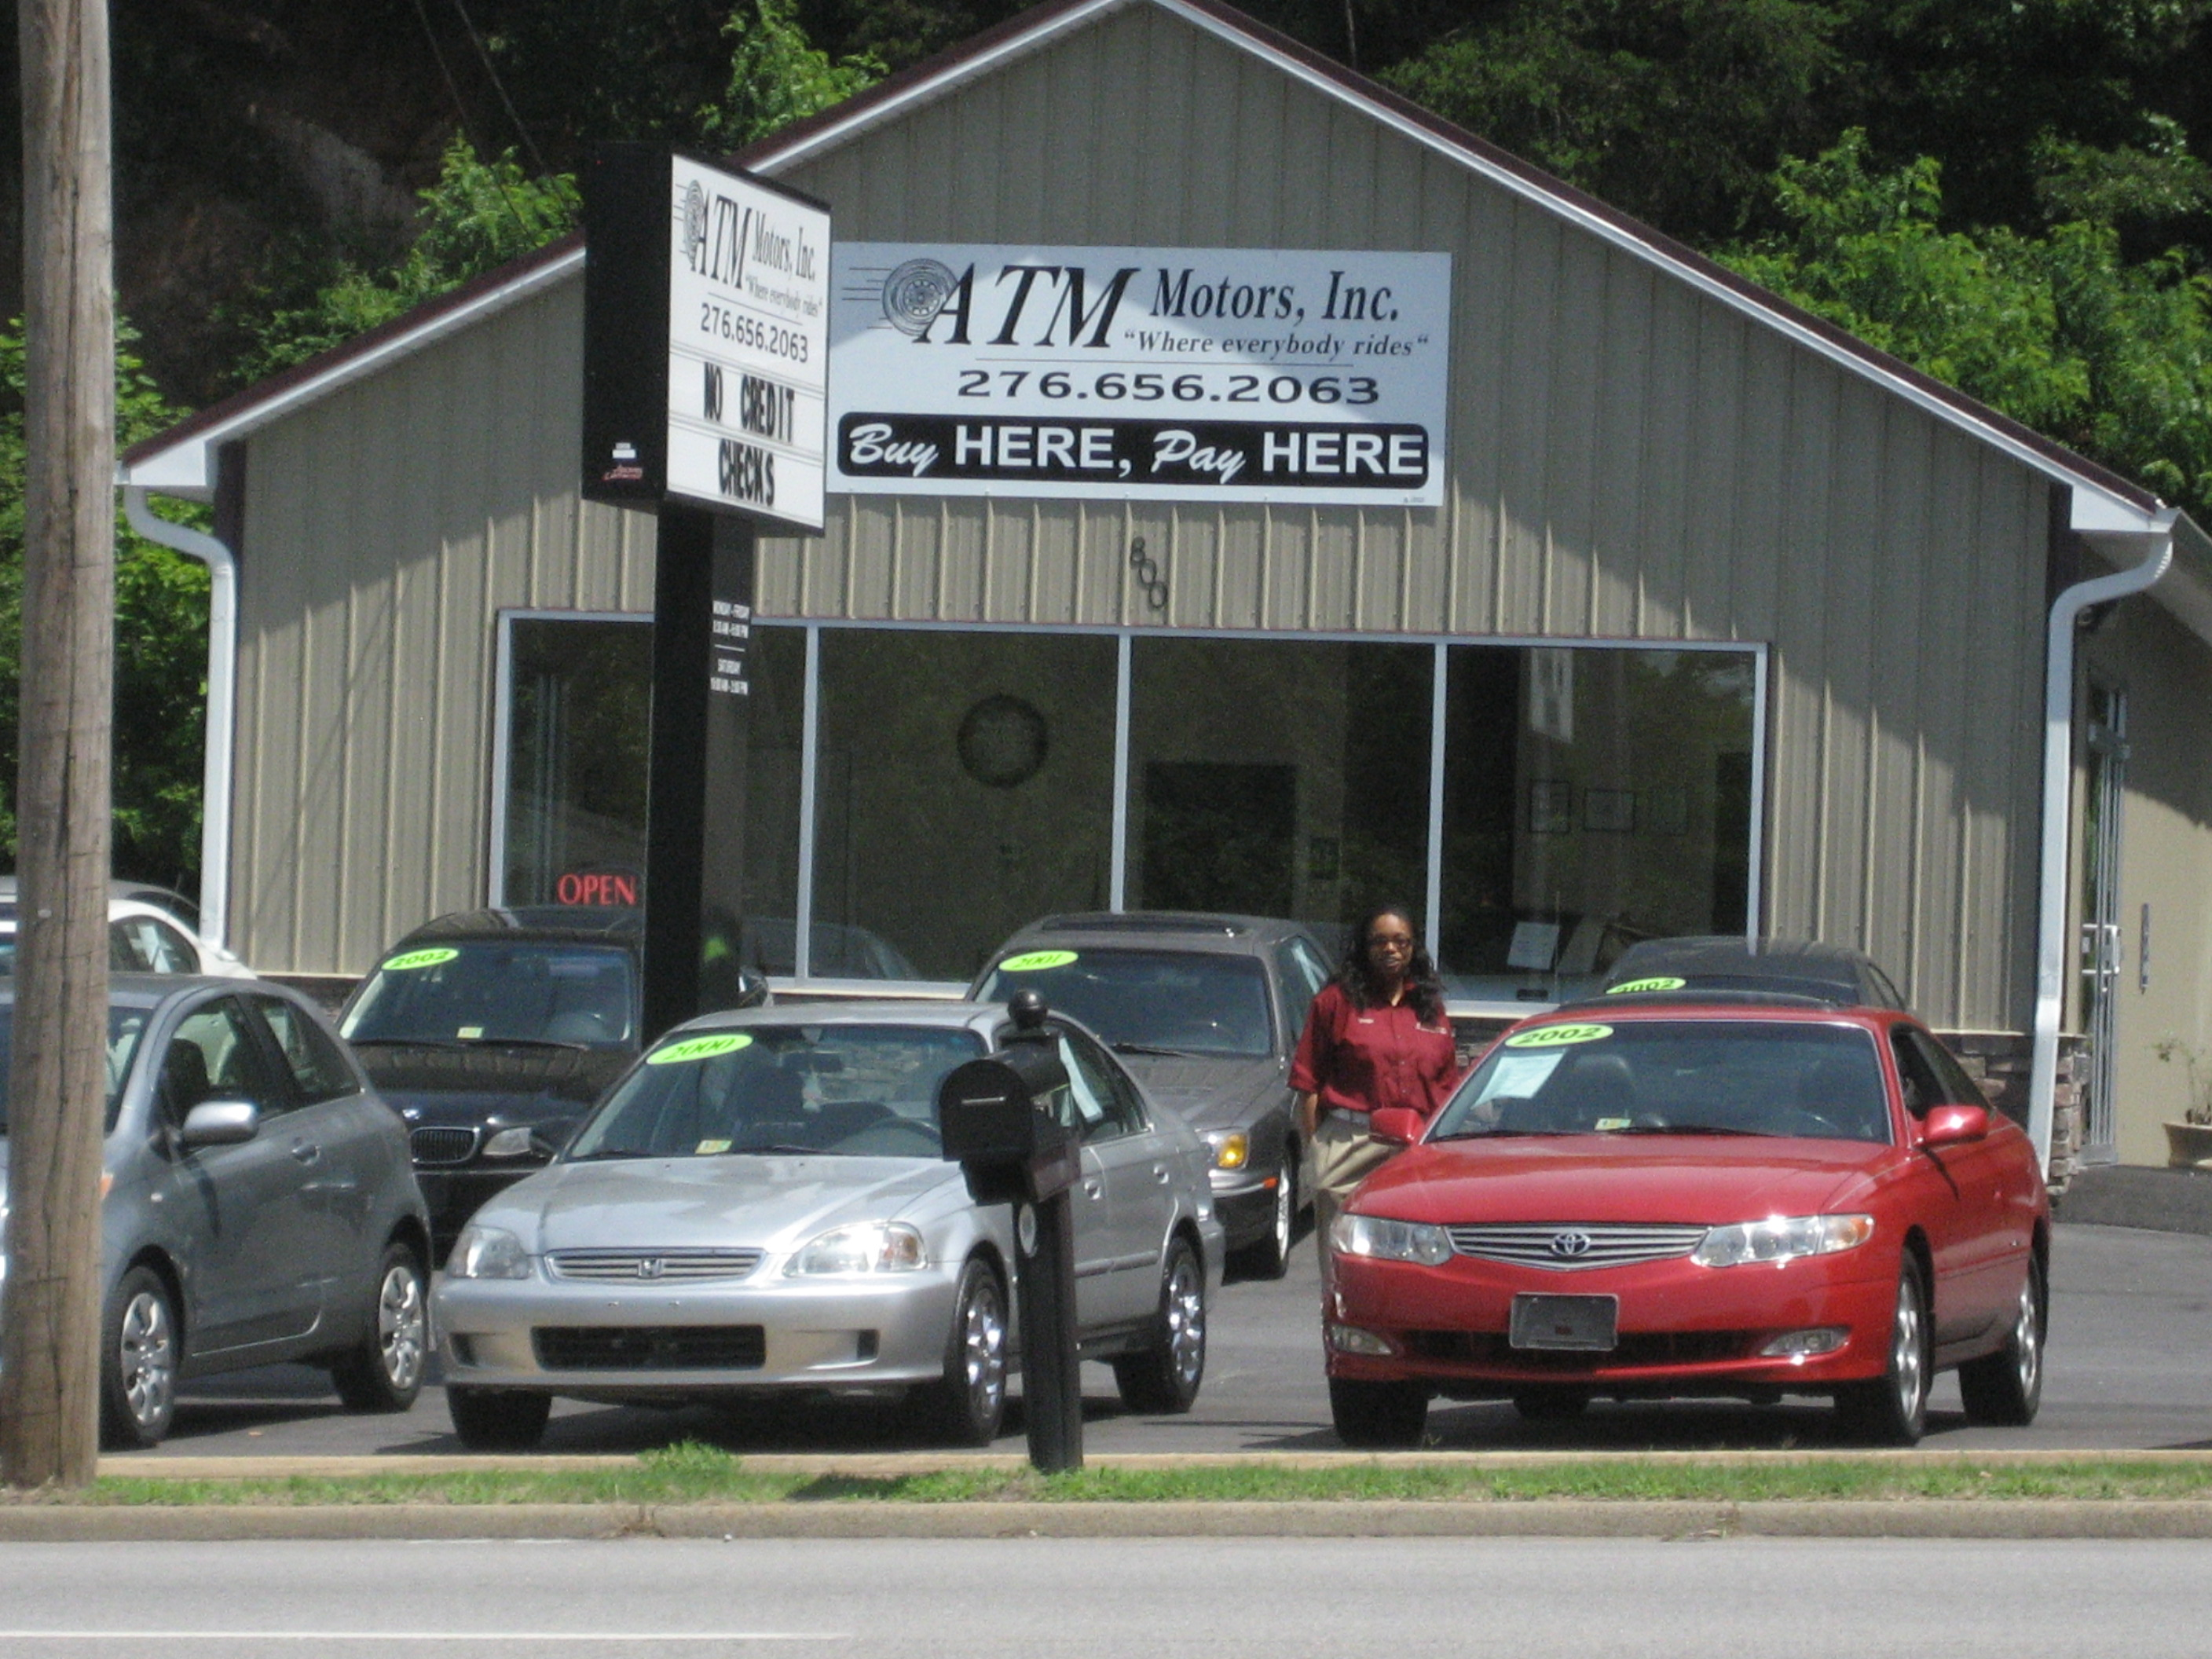 atm motors inc is a minority owned used car dealership